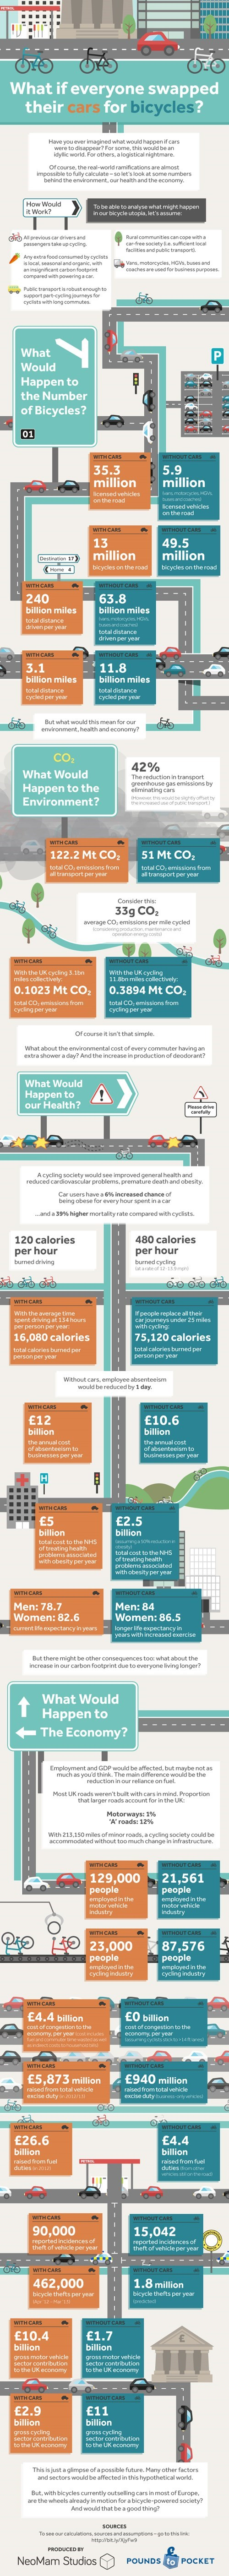 What if Everyone Swapped Their Cars for Bicycles?